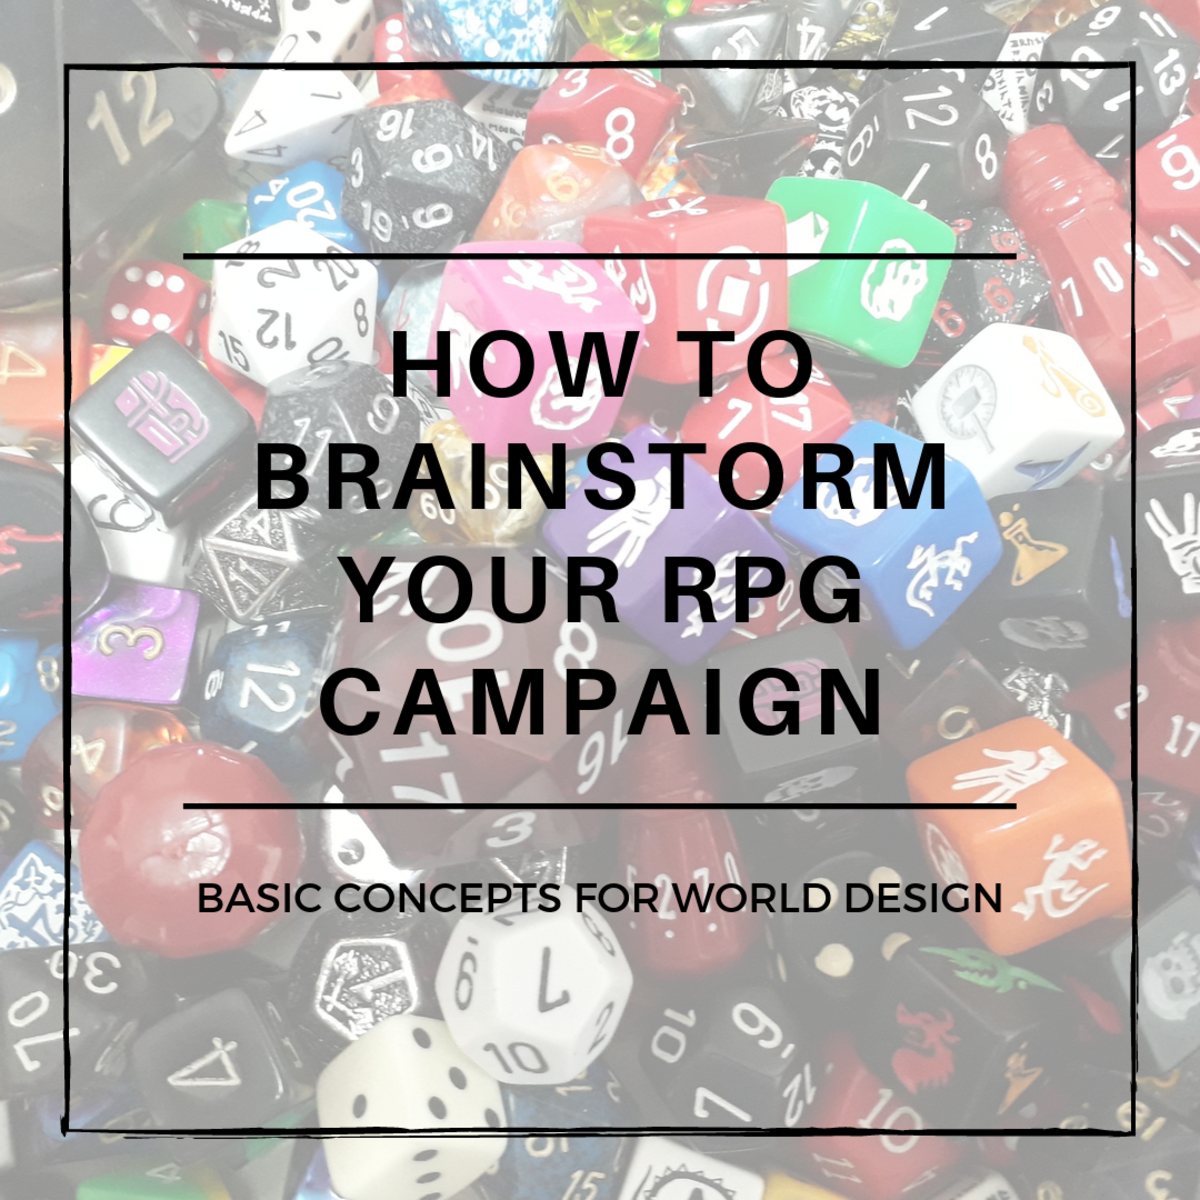 Brainstorming Your RPG Campaign